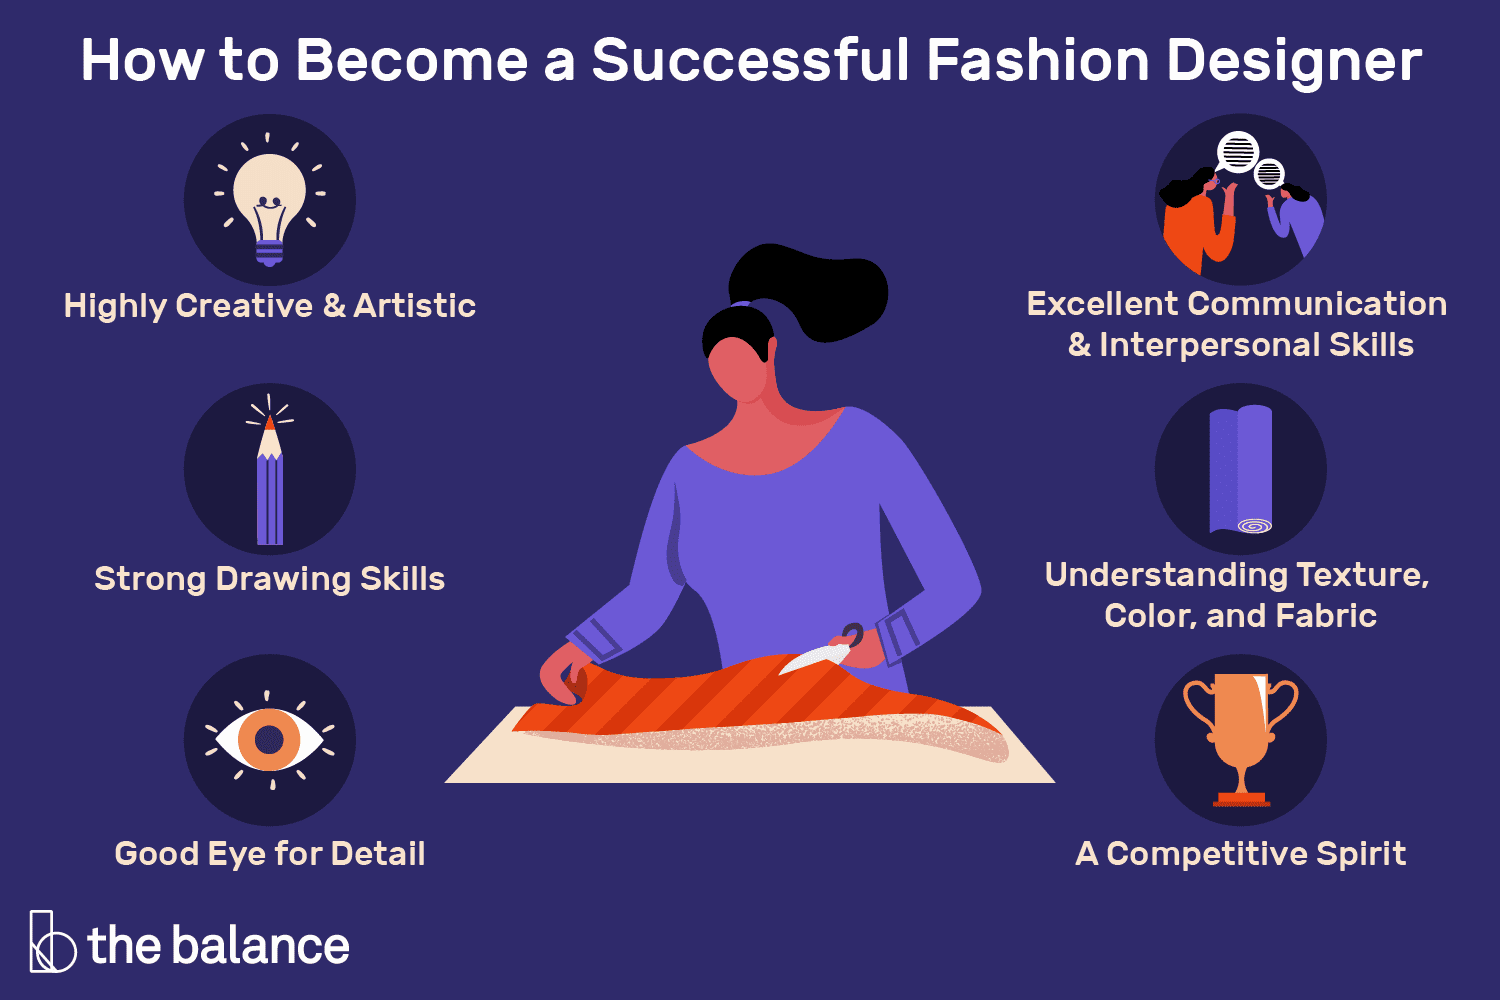 Want To Know How To Become A Successful Fashion Designer This Is A List Of 10 Skills Includ Become A Fashion Designer Fashion Design How To Become Successful